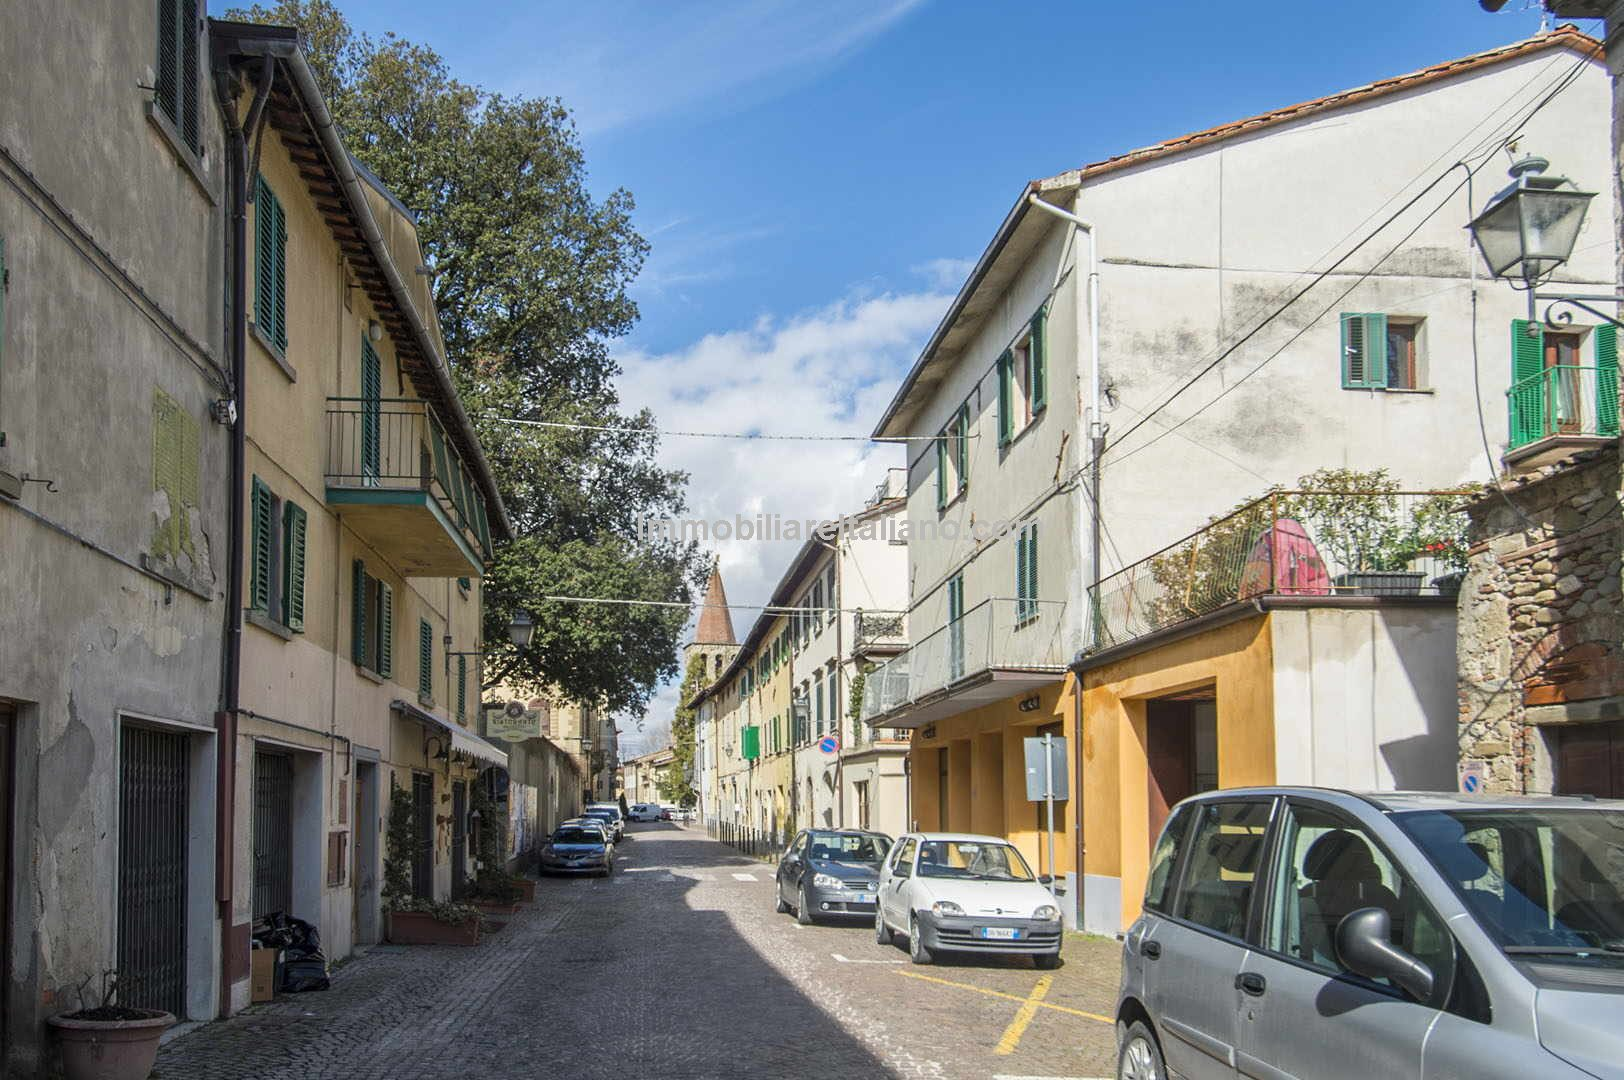 Unusual Sansepolcro Tuscany city centre property which can be used for home and income and has further potential. Originally a 2-bed apartment it has been renovated and restored and split into 2 1 bed units. Possible to turn the loft space into another bedroom with bathroom.